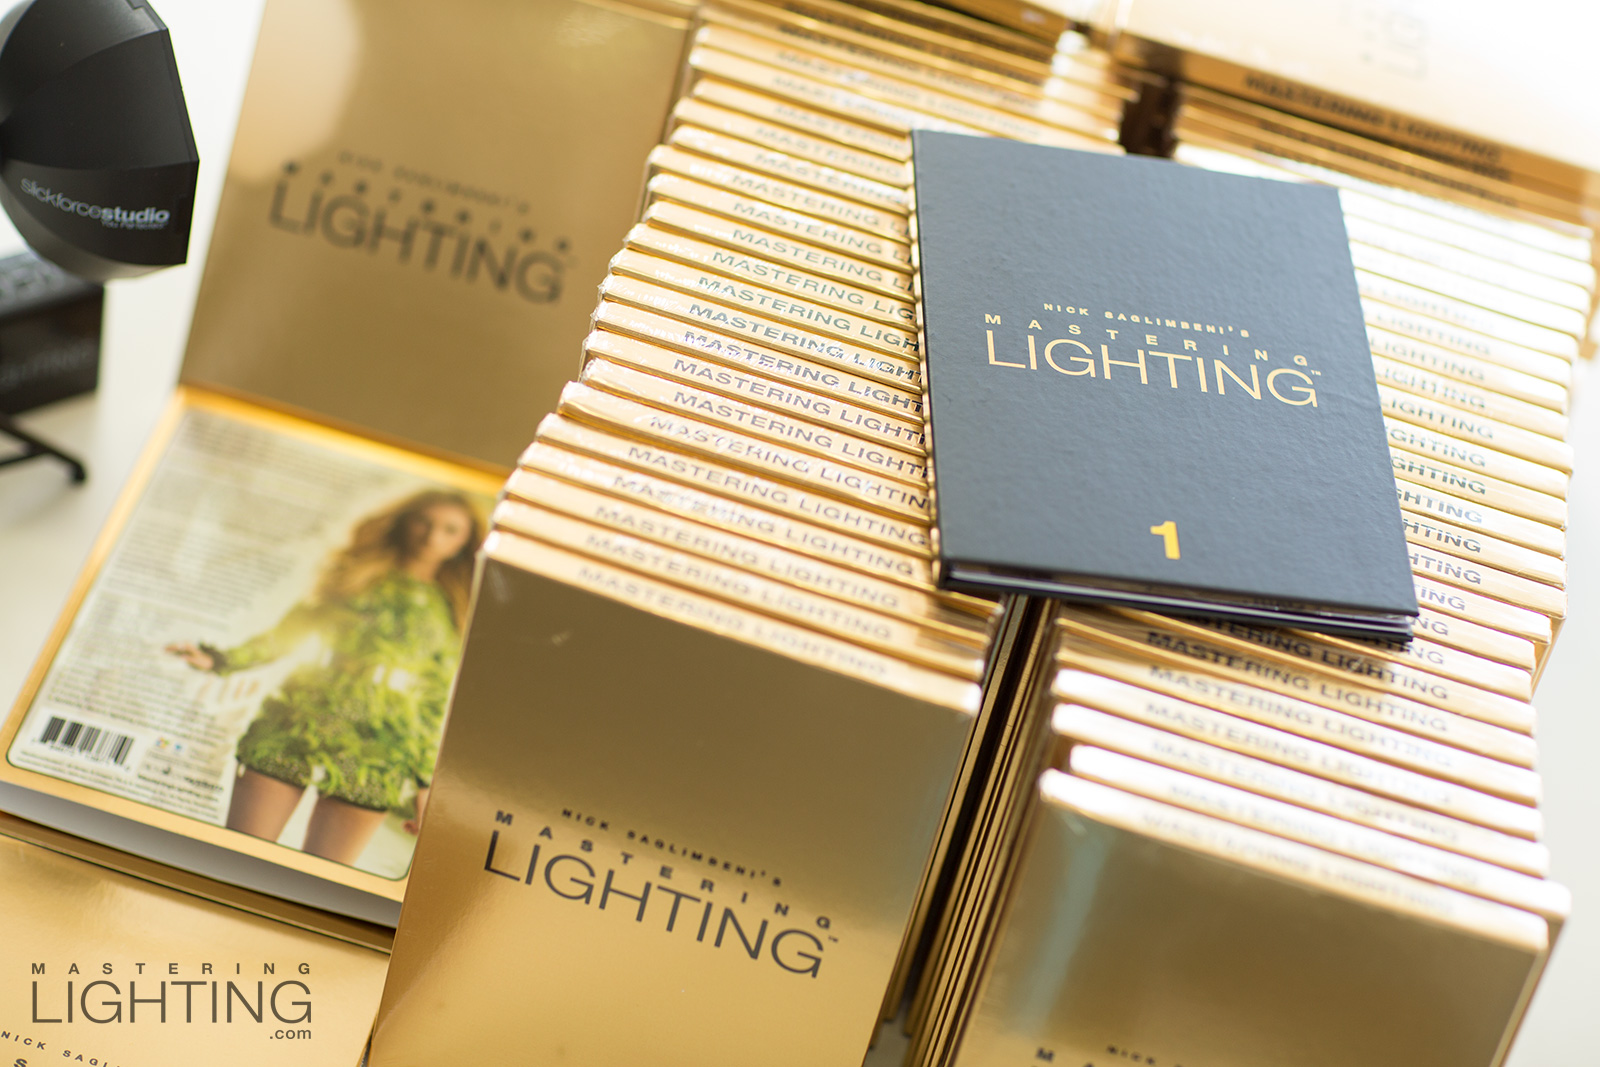 nick-saglimbeni-mastering-lighting-gold-foil-box-packaging-volume-one-stac266